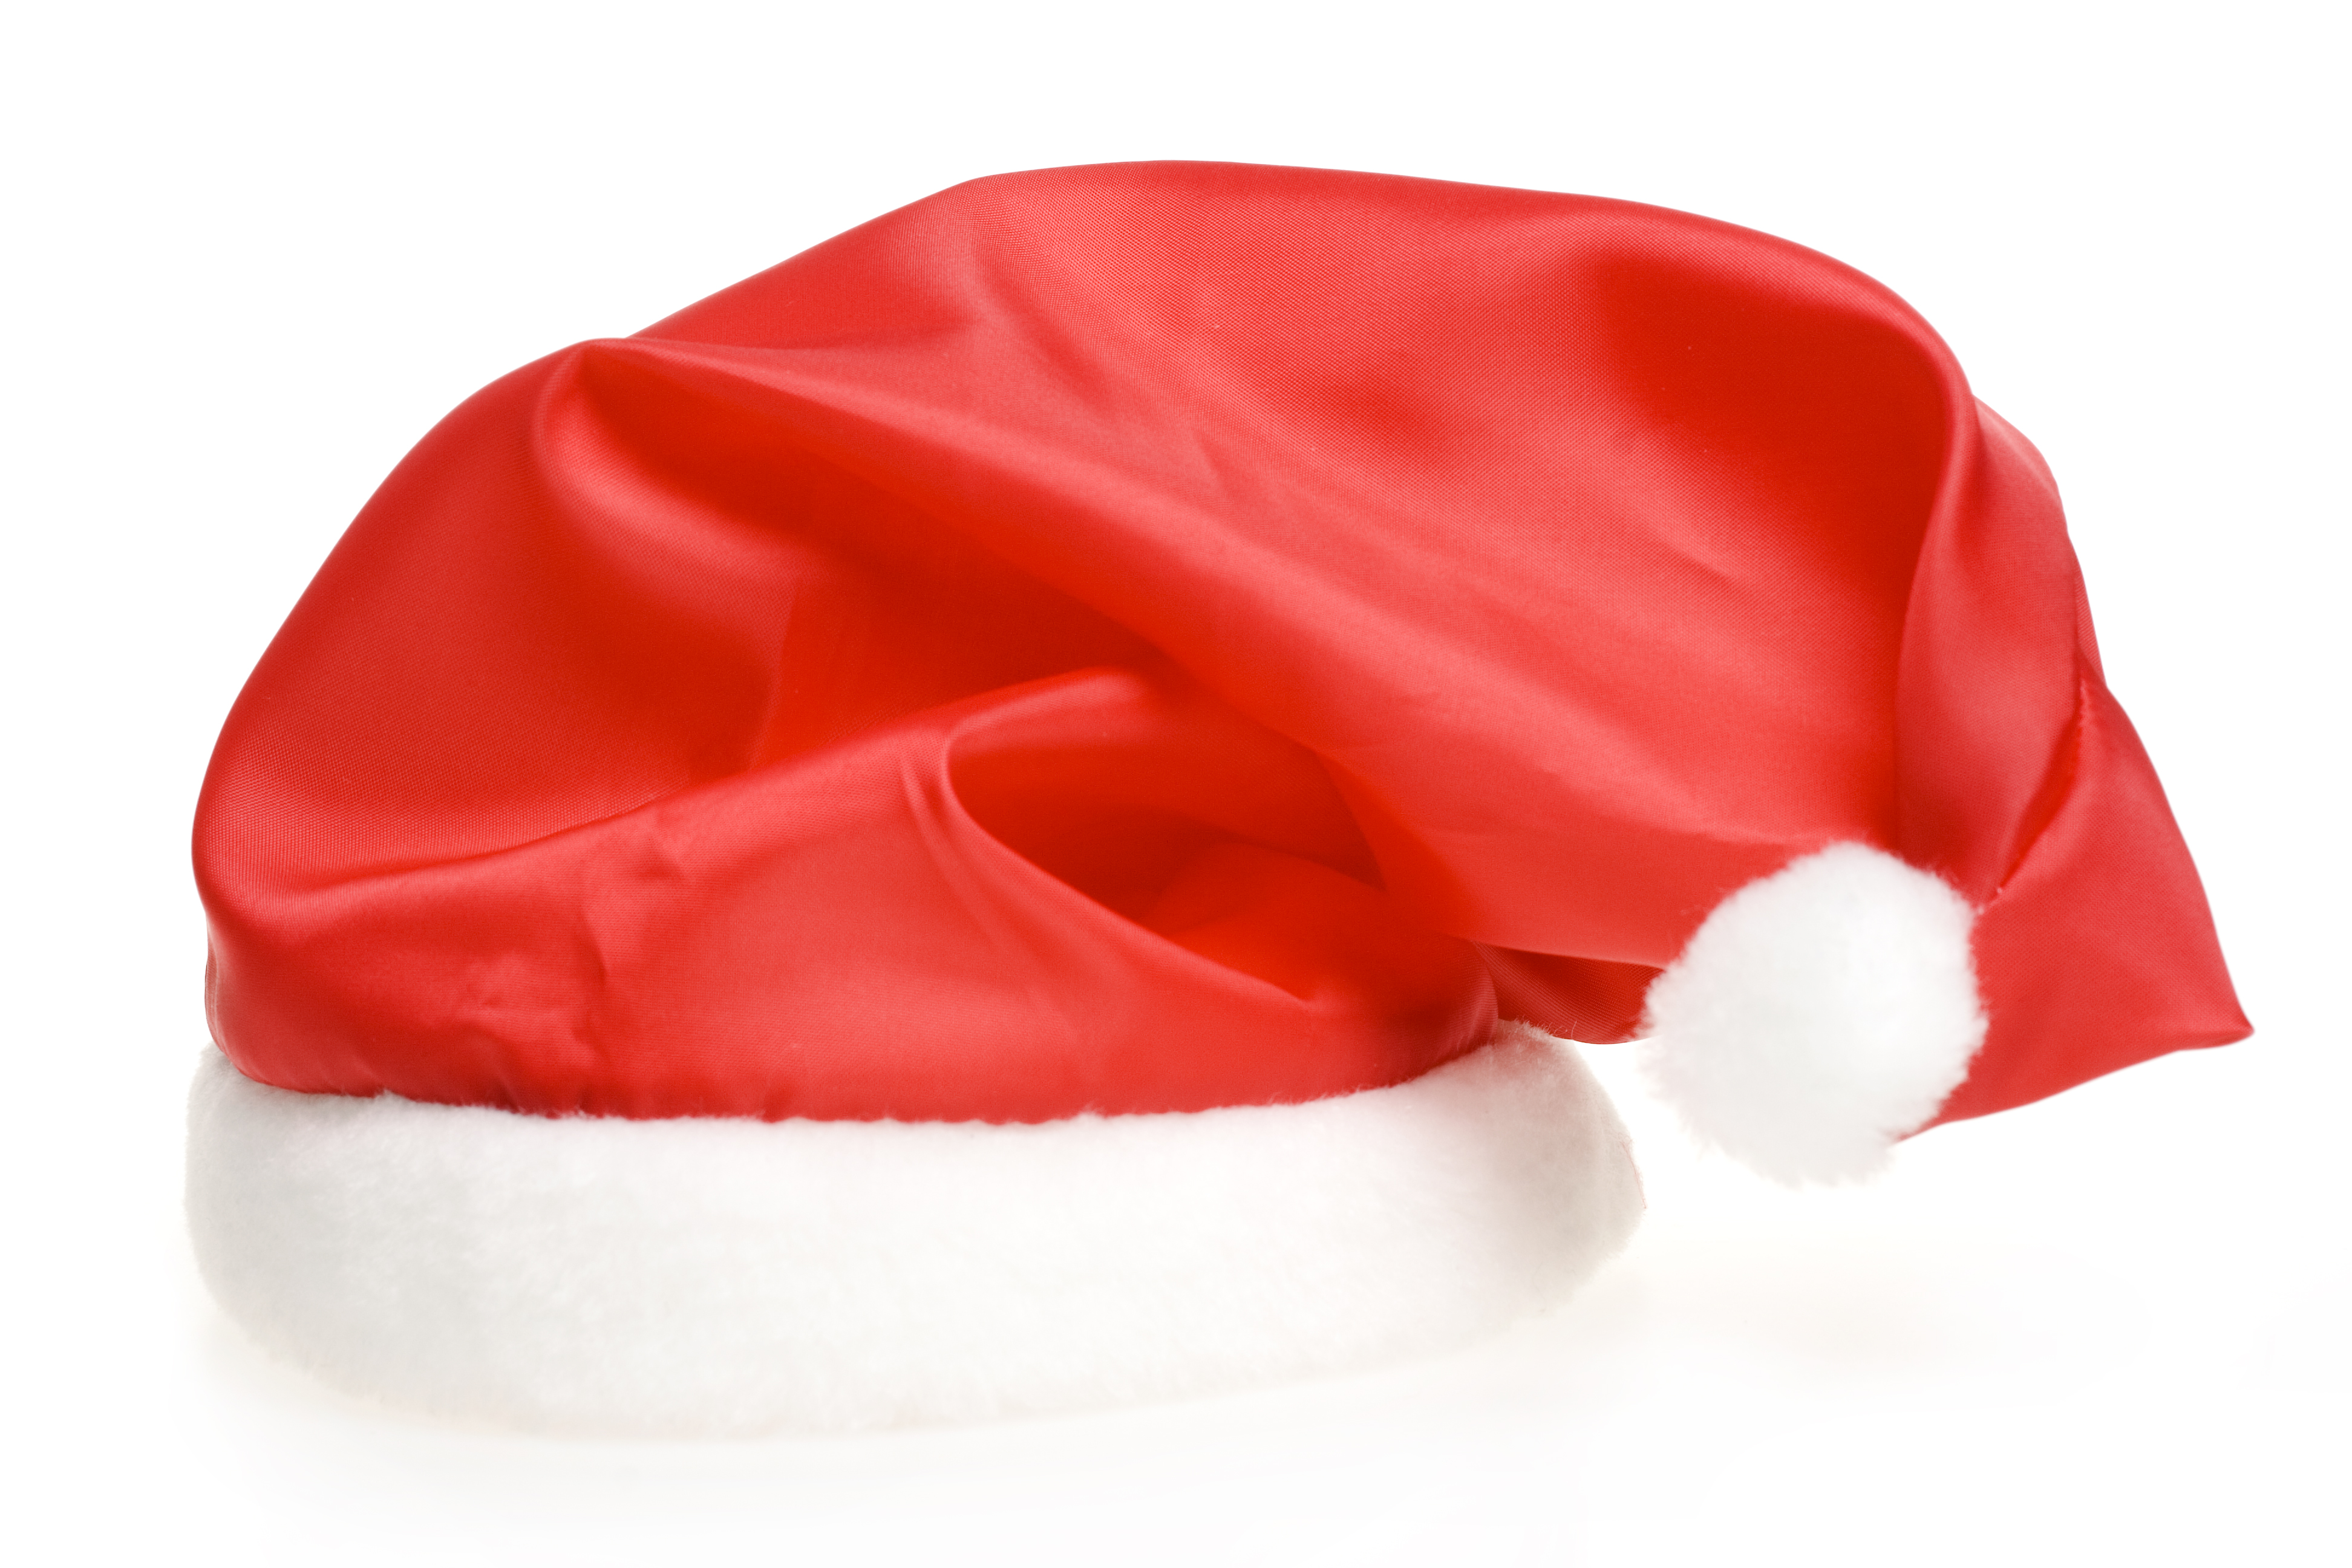 Santa Claus red hat, Accessory, Single, Object, Party, HQ Photo